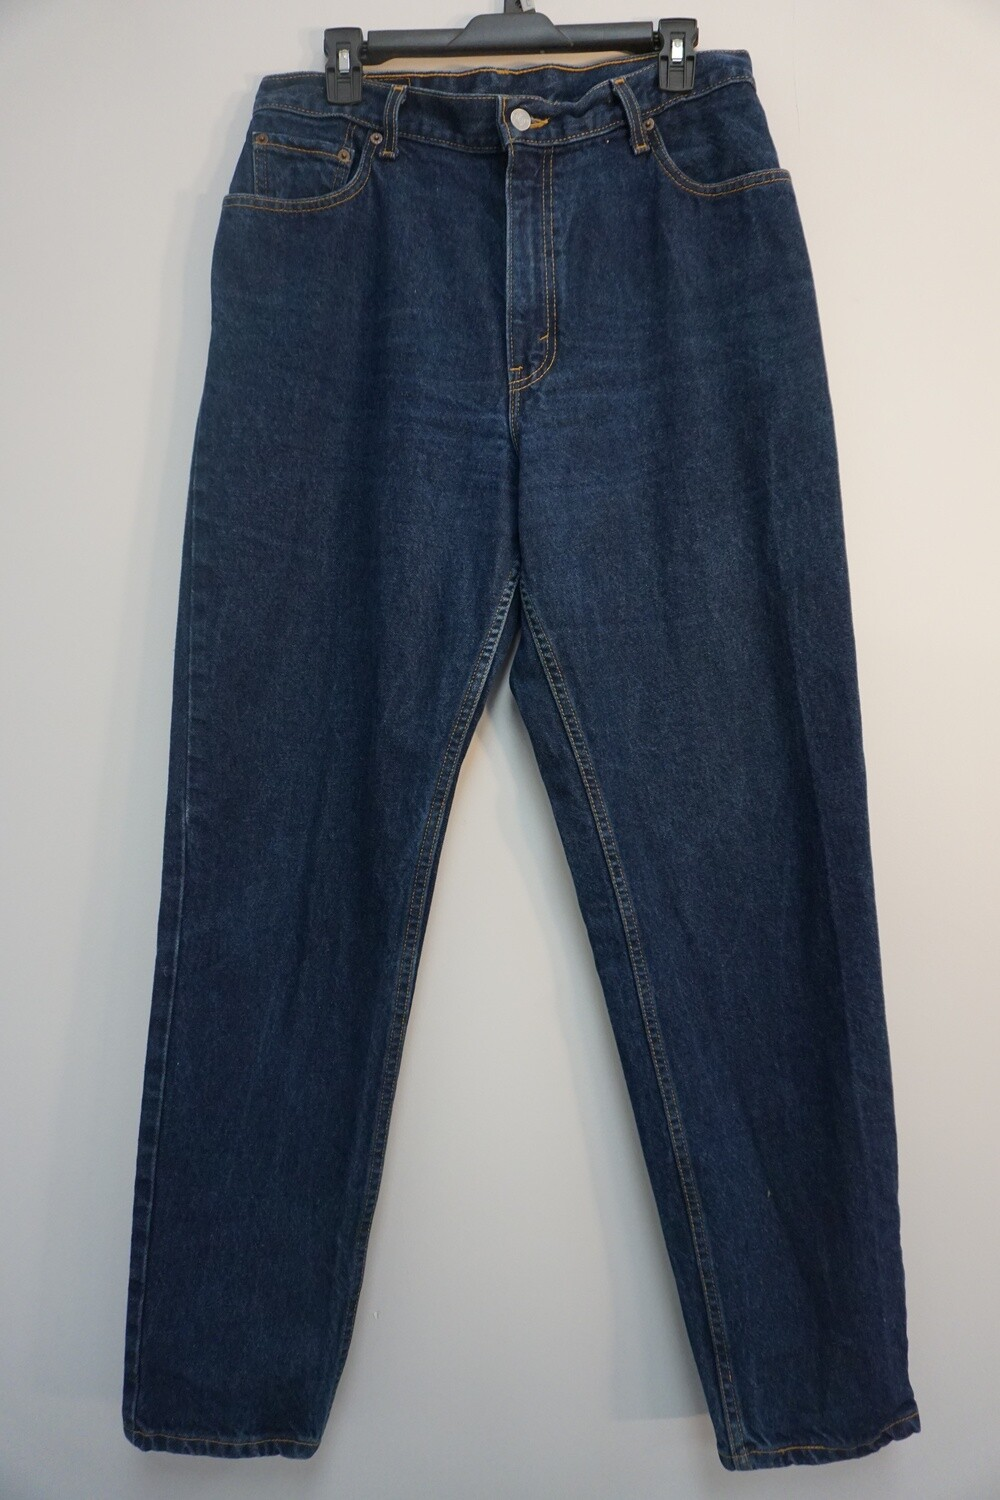 Women's 550 Levi's Relaxed Fit Jeans